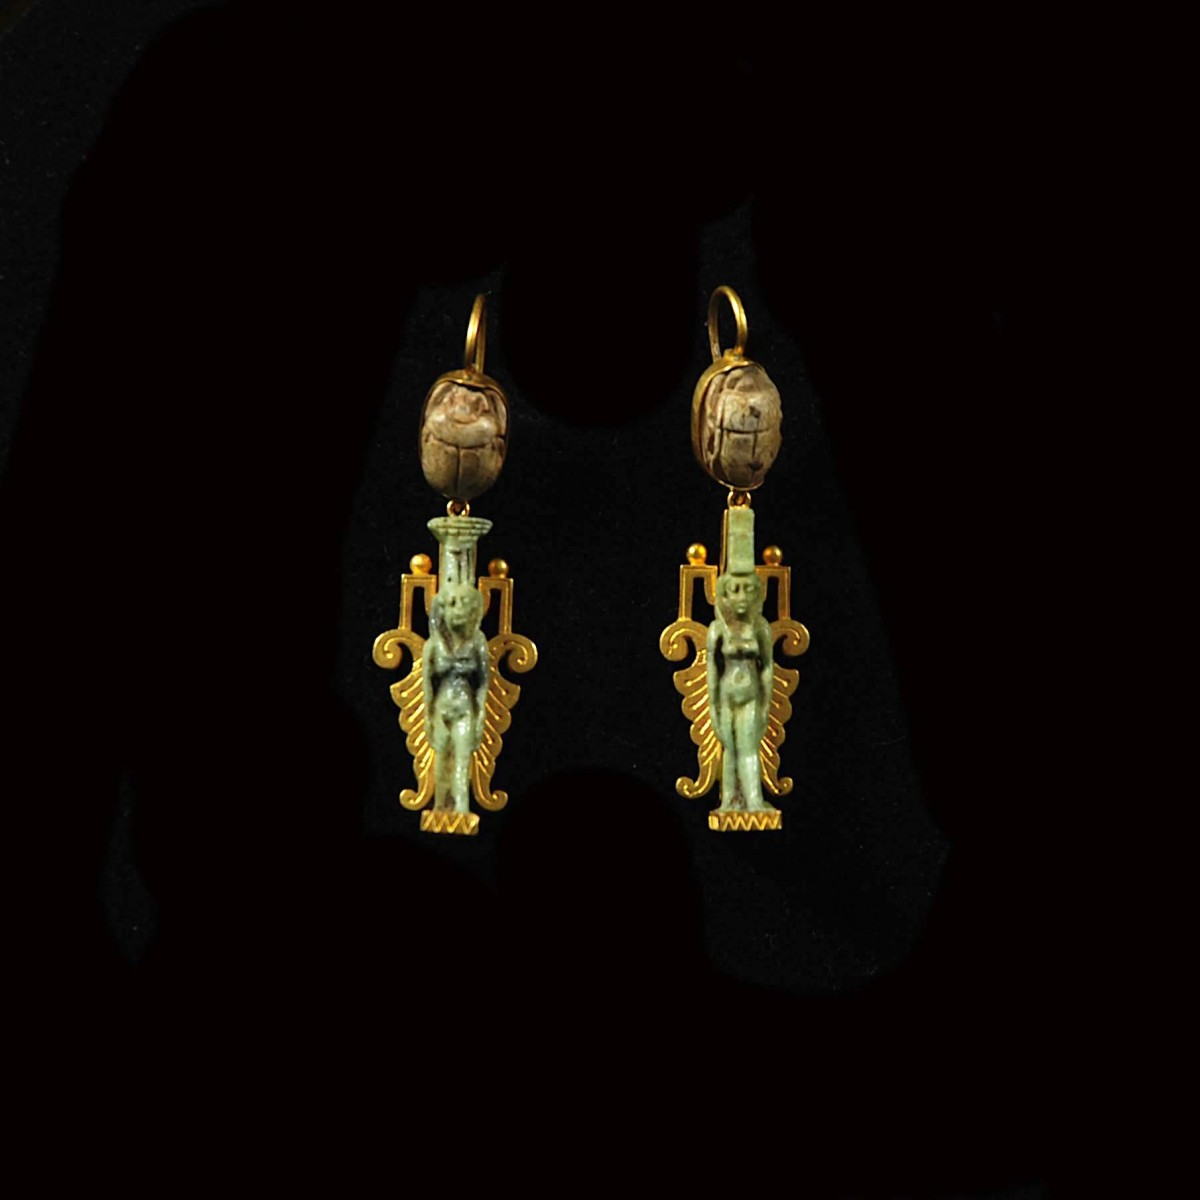 Egyptian gold jewellry with amulets earrings